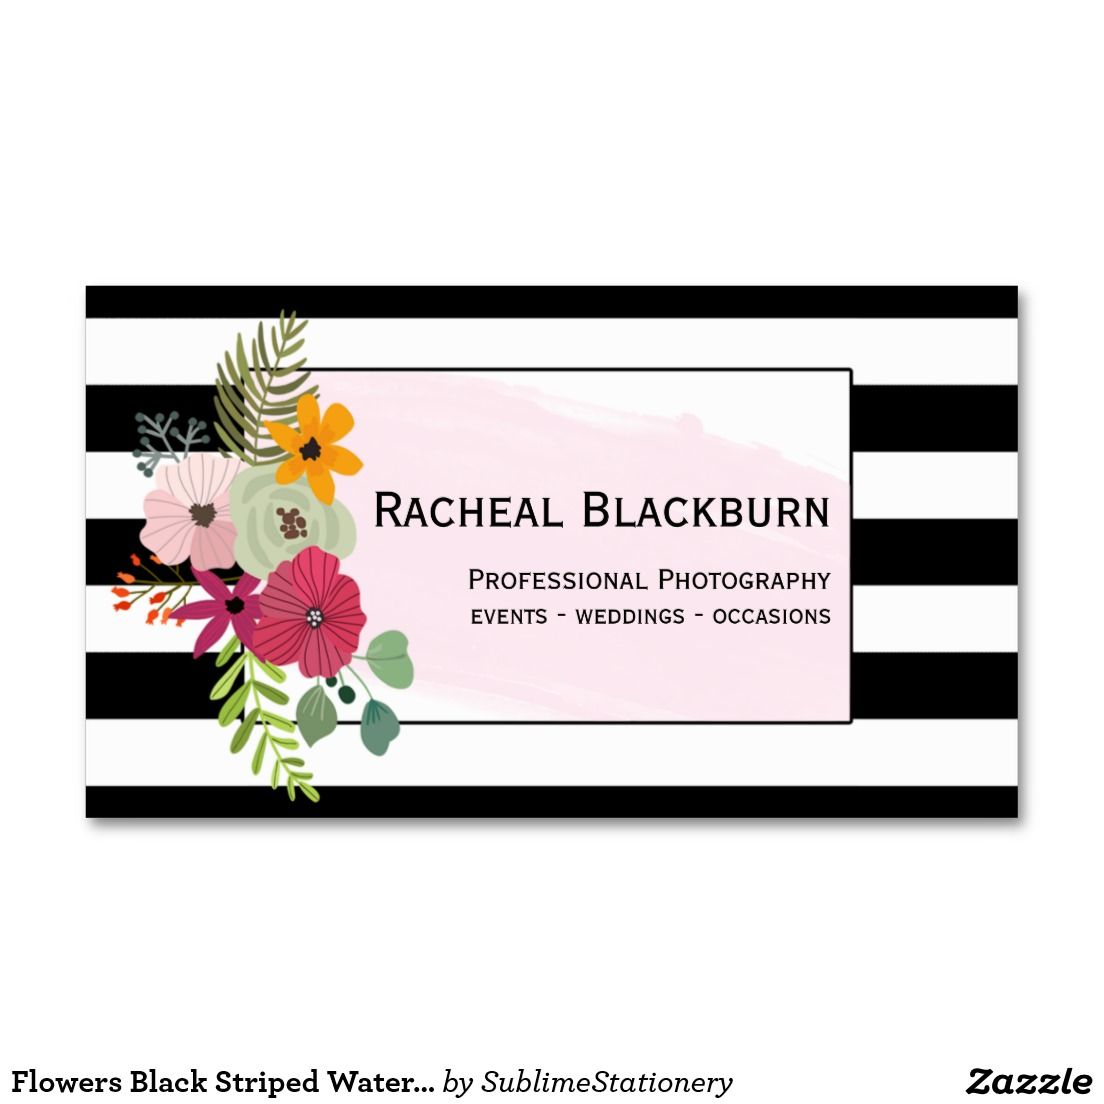 Flowers black striped watercolor photography business card flowers black striped watercolor photography business card reheart Choice Image